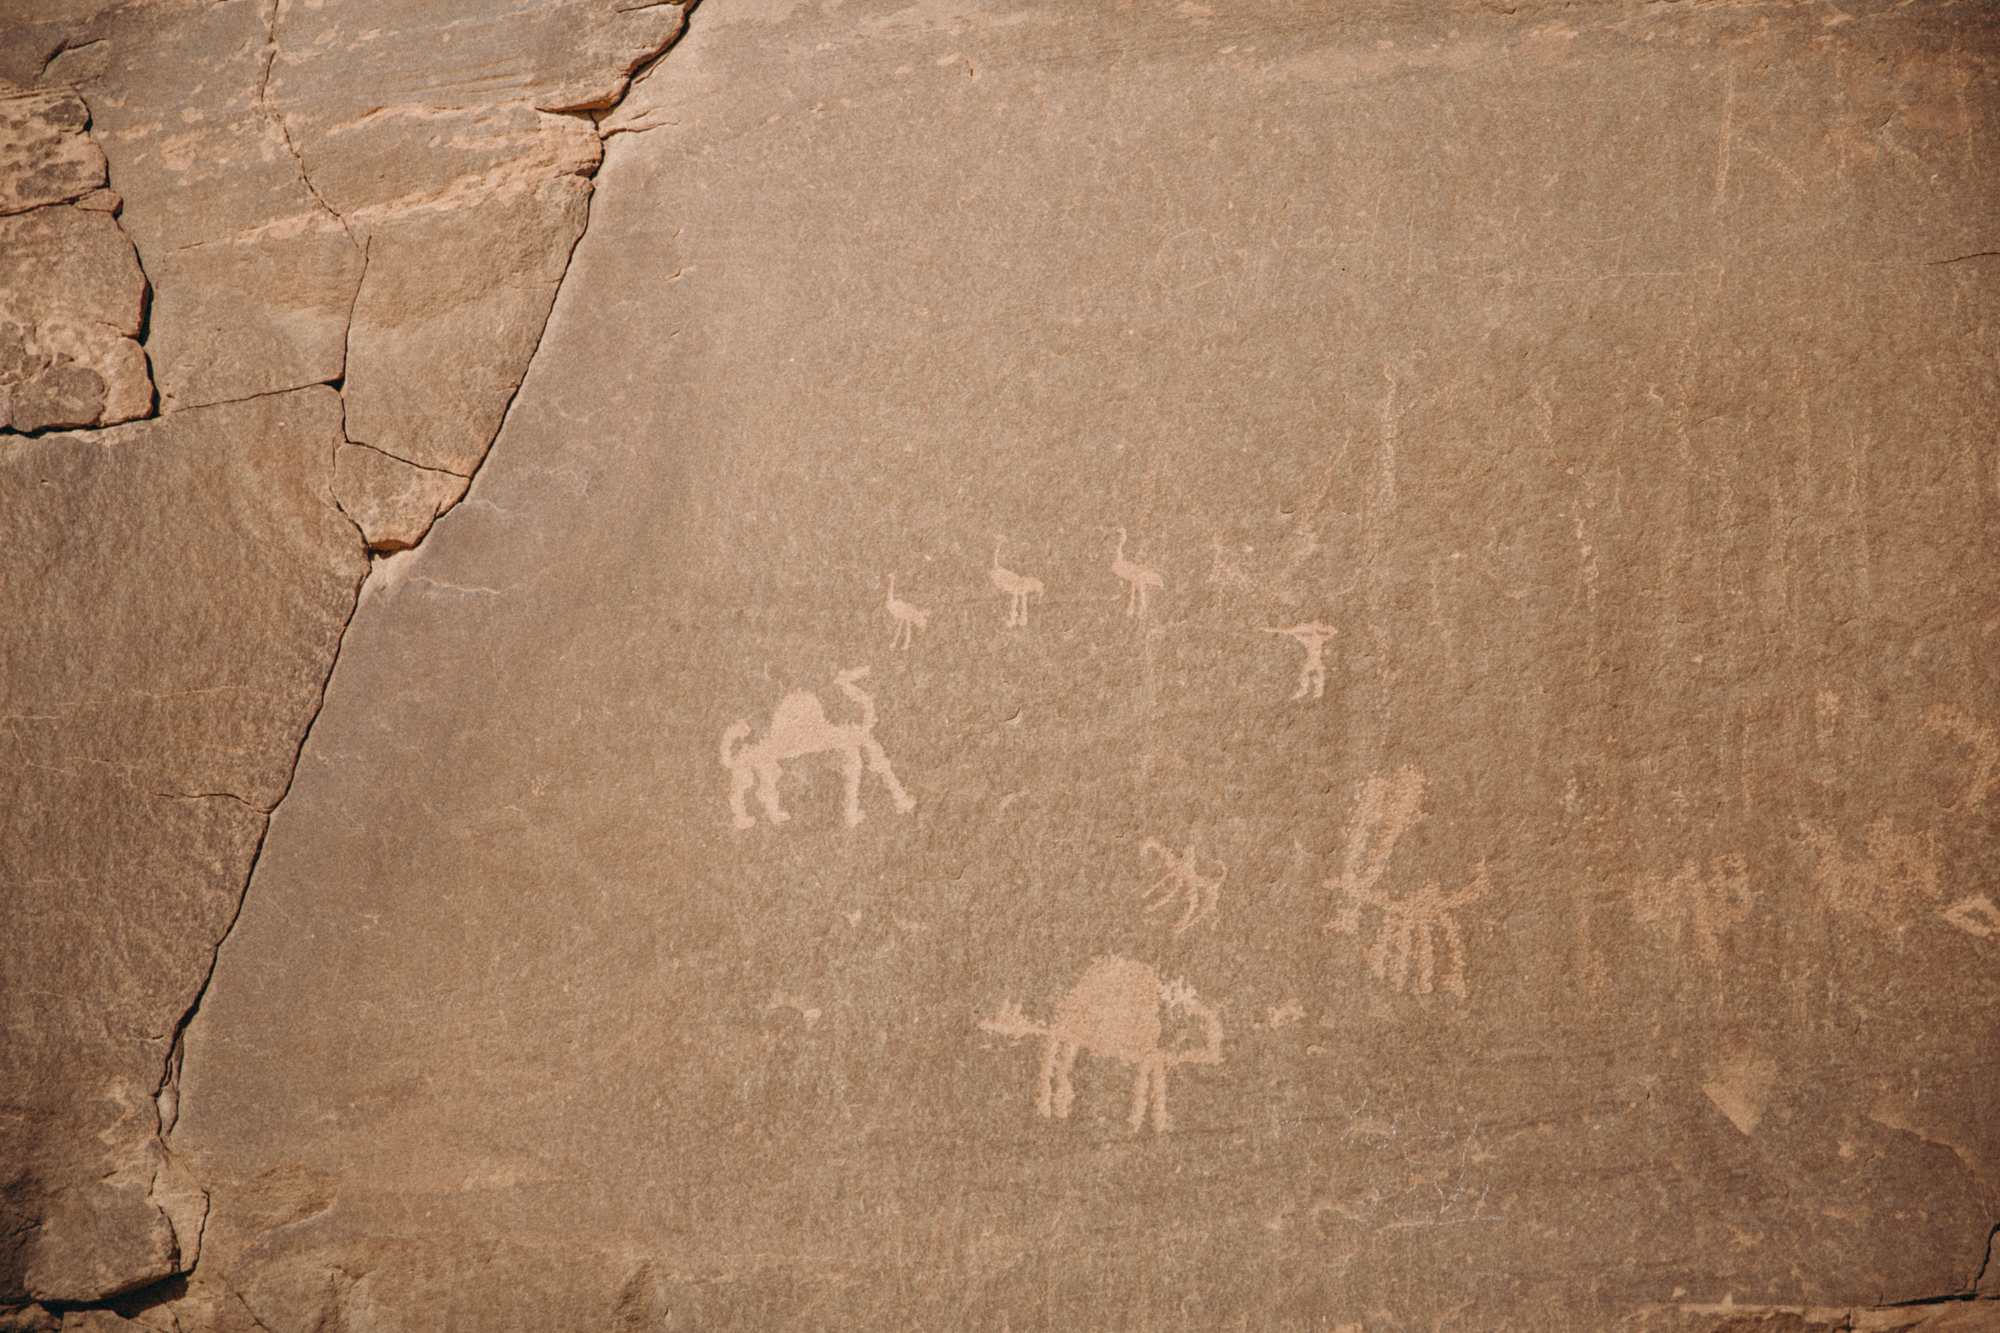 Ancient drawings on the cliffs!